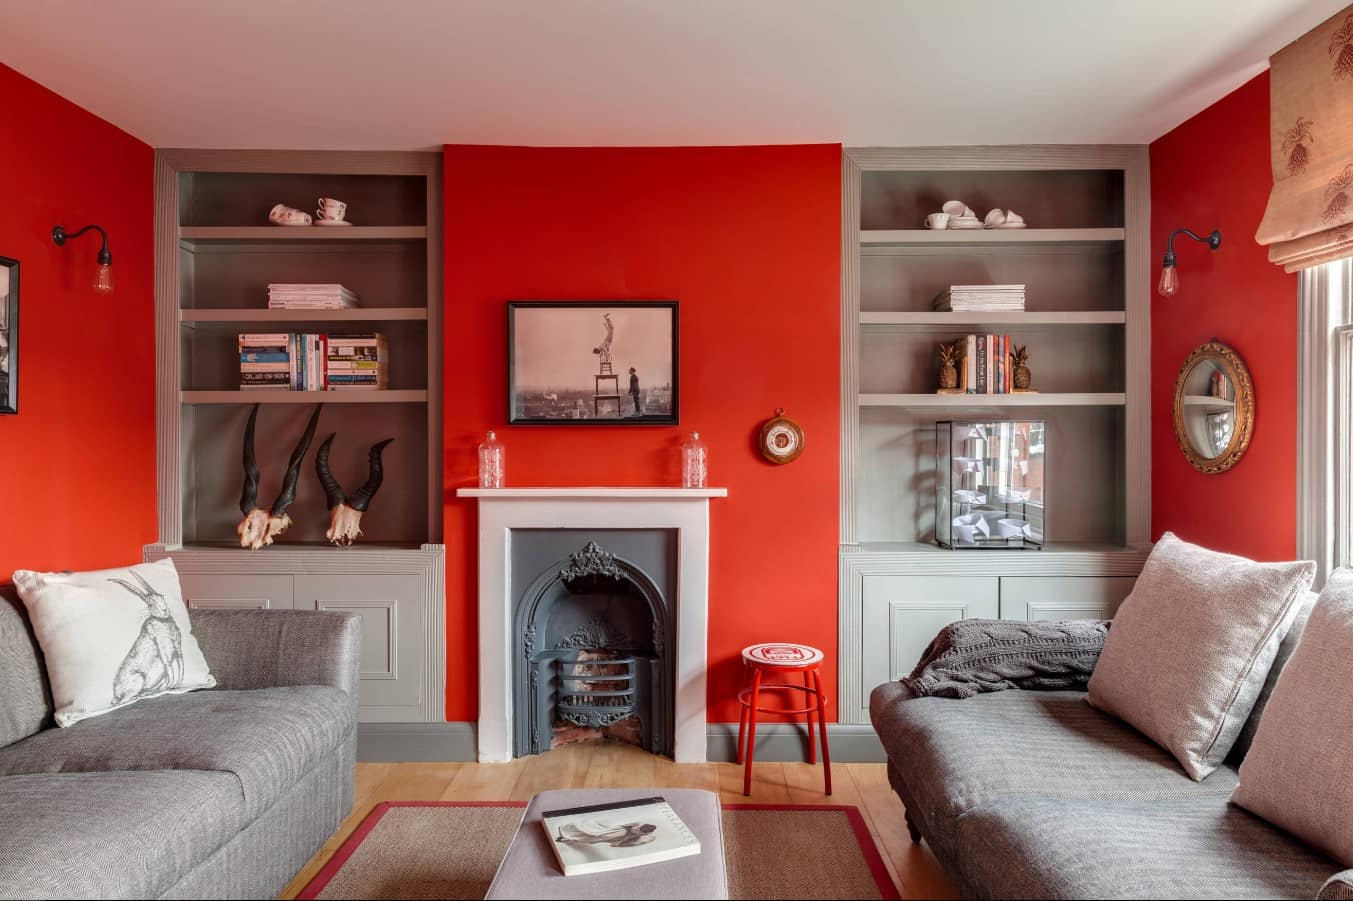 Red Living Room: Elegant & Bright Interior Design. Accent wall to decorate artificial fireplace